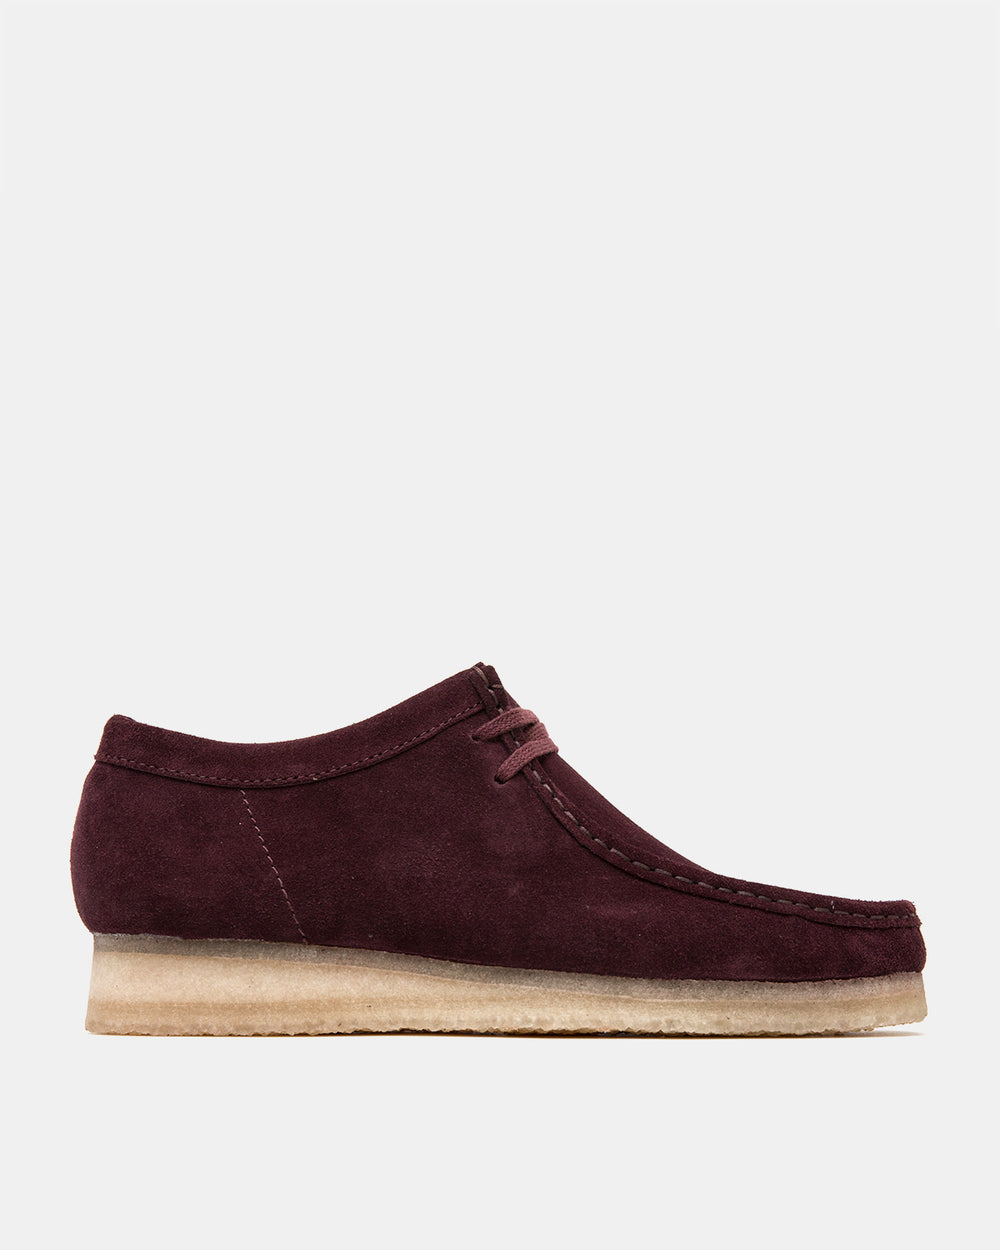 Clarks - Wallabee (Burgundy Suede)